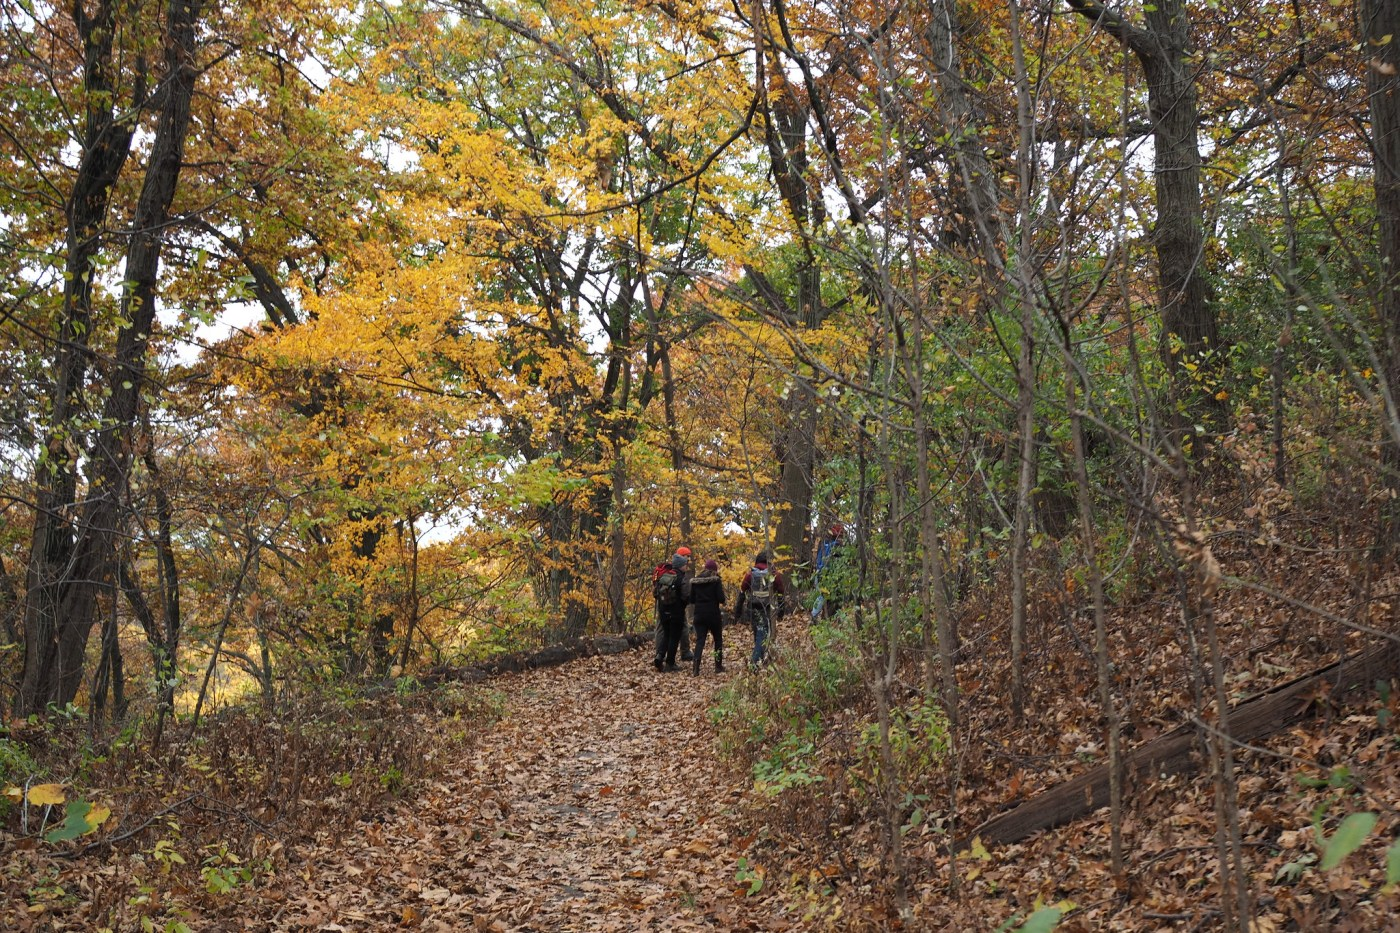 Hiking up the paved trail at Inwood Hill Park in the Bronx